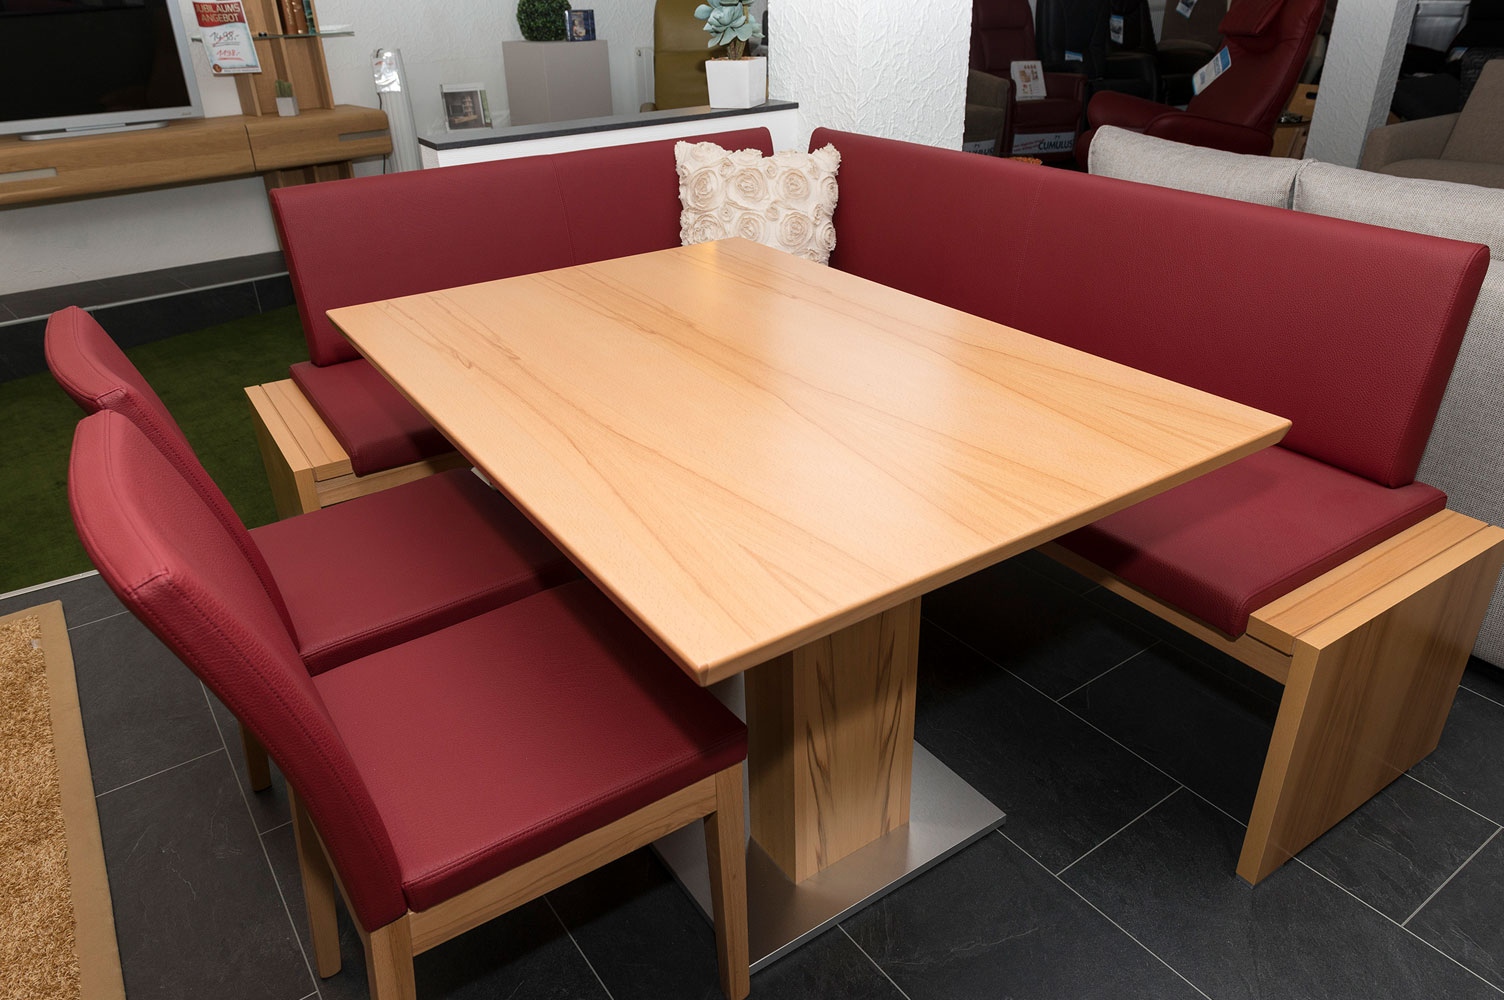 Essgruppe holz/rot